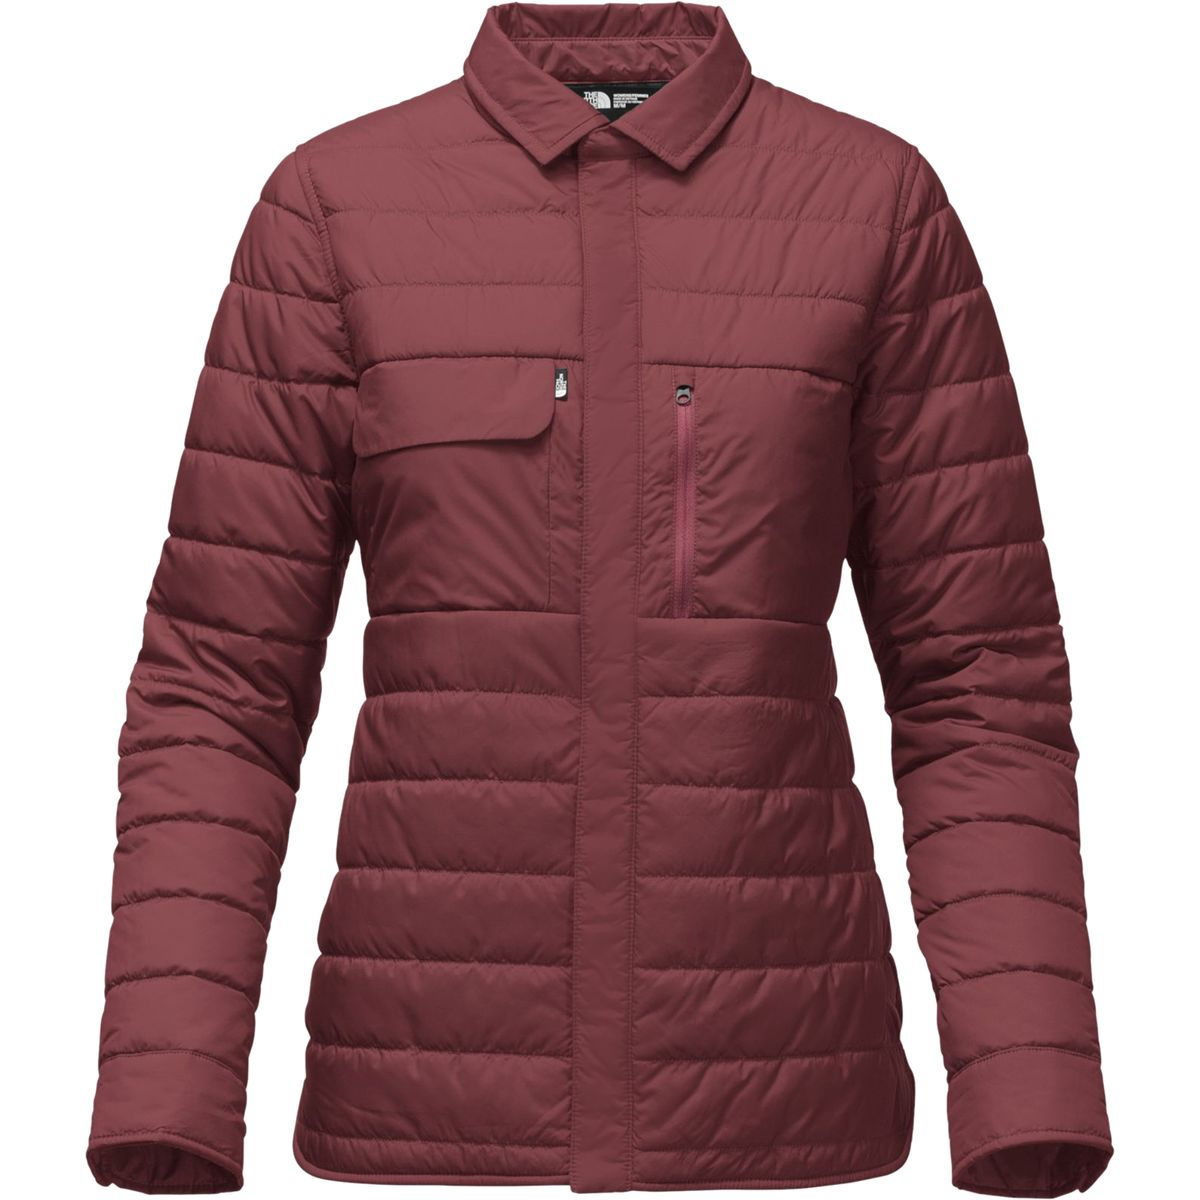 The North Face Whoisthis Jacket - Women